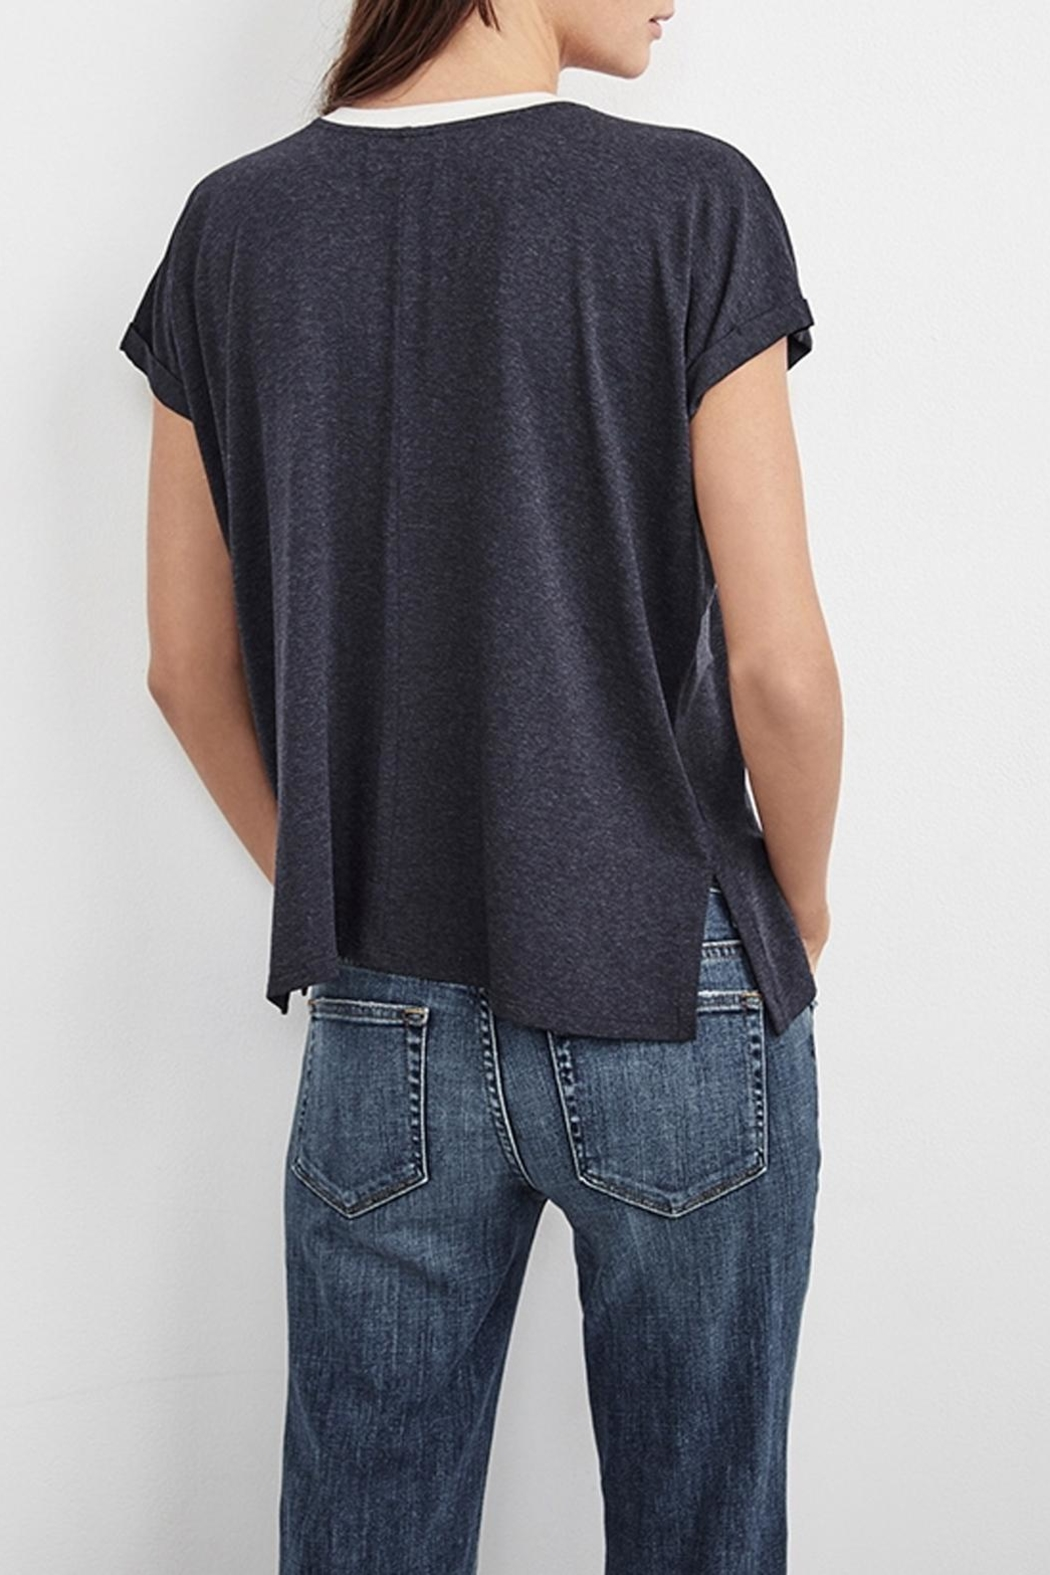 Velvet Annamae Contrast Top - Back Cropped Image